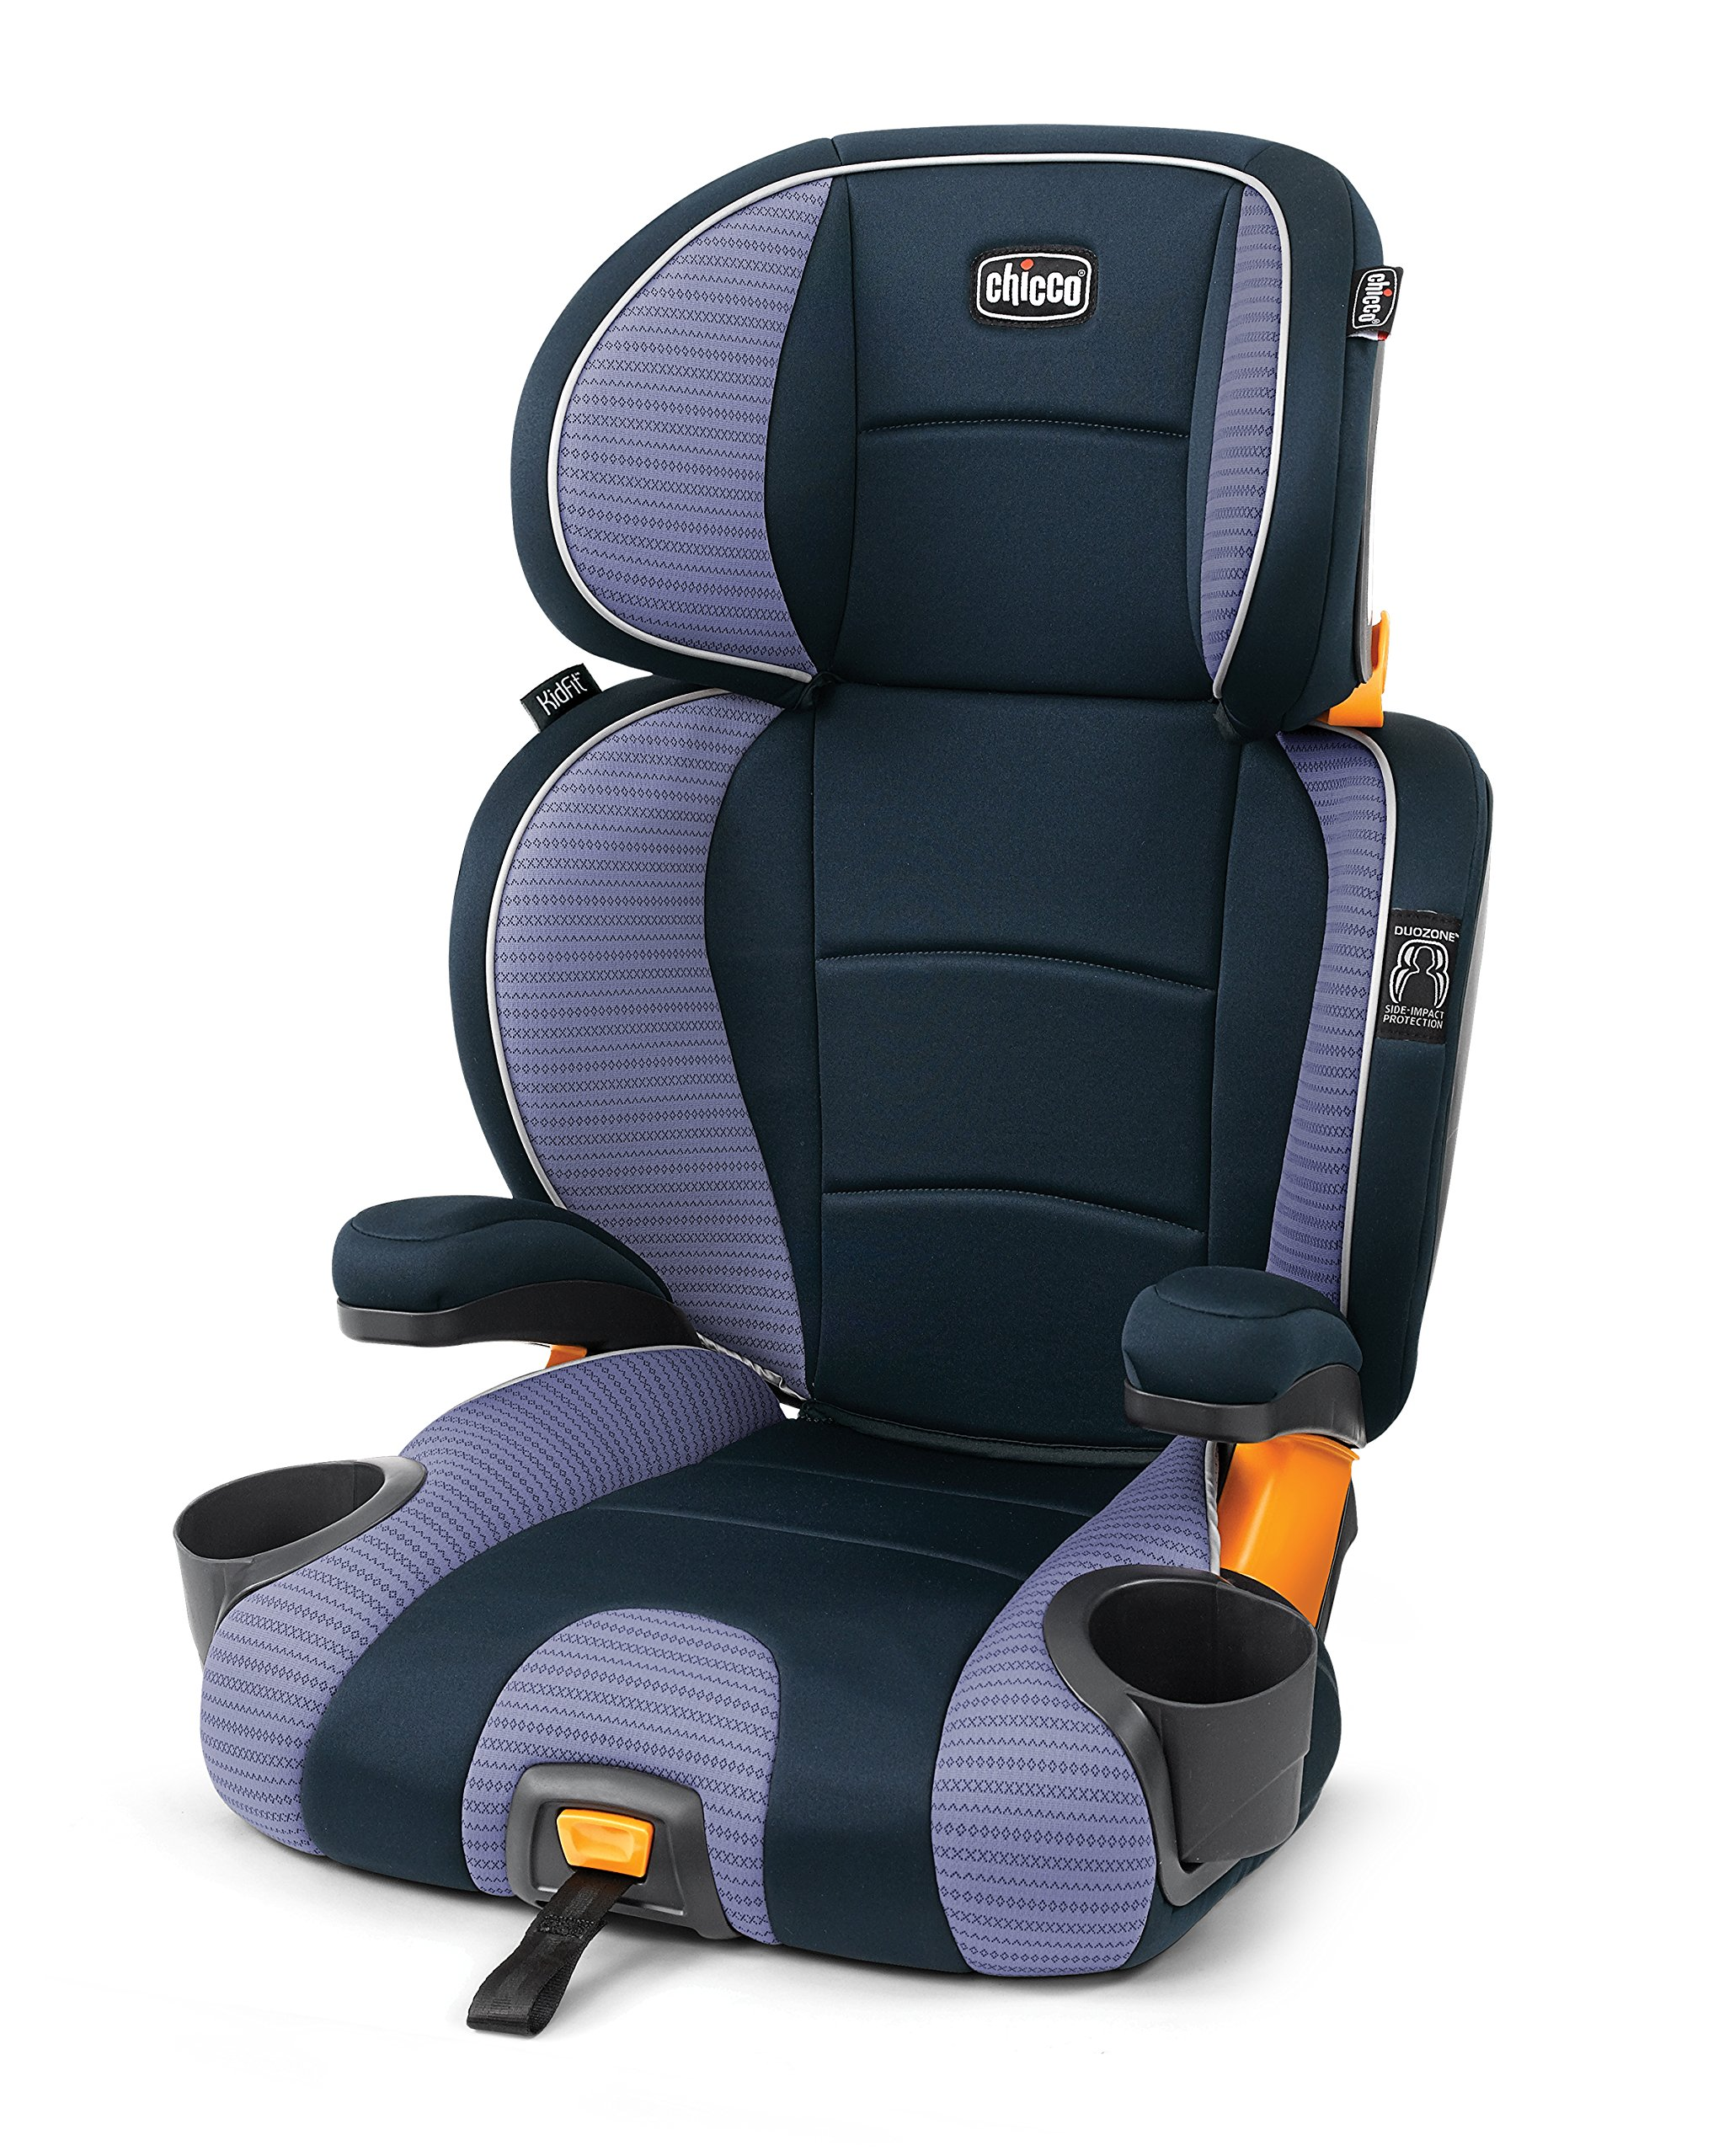 Amazon.com : Chicco KidFit 2-in-1 Belt Positioning Booster Car Seat